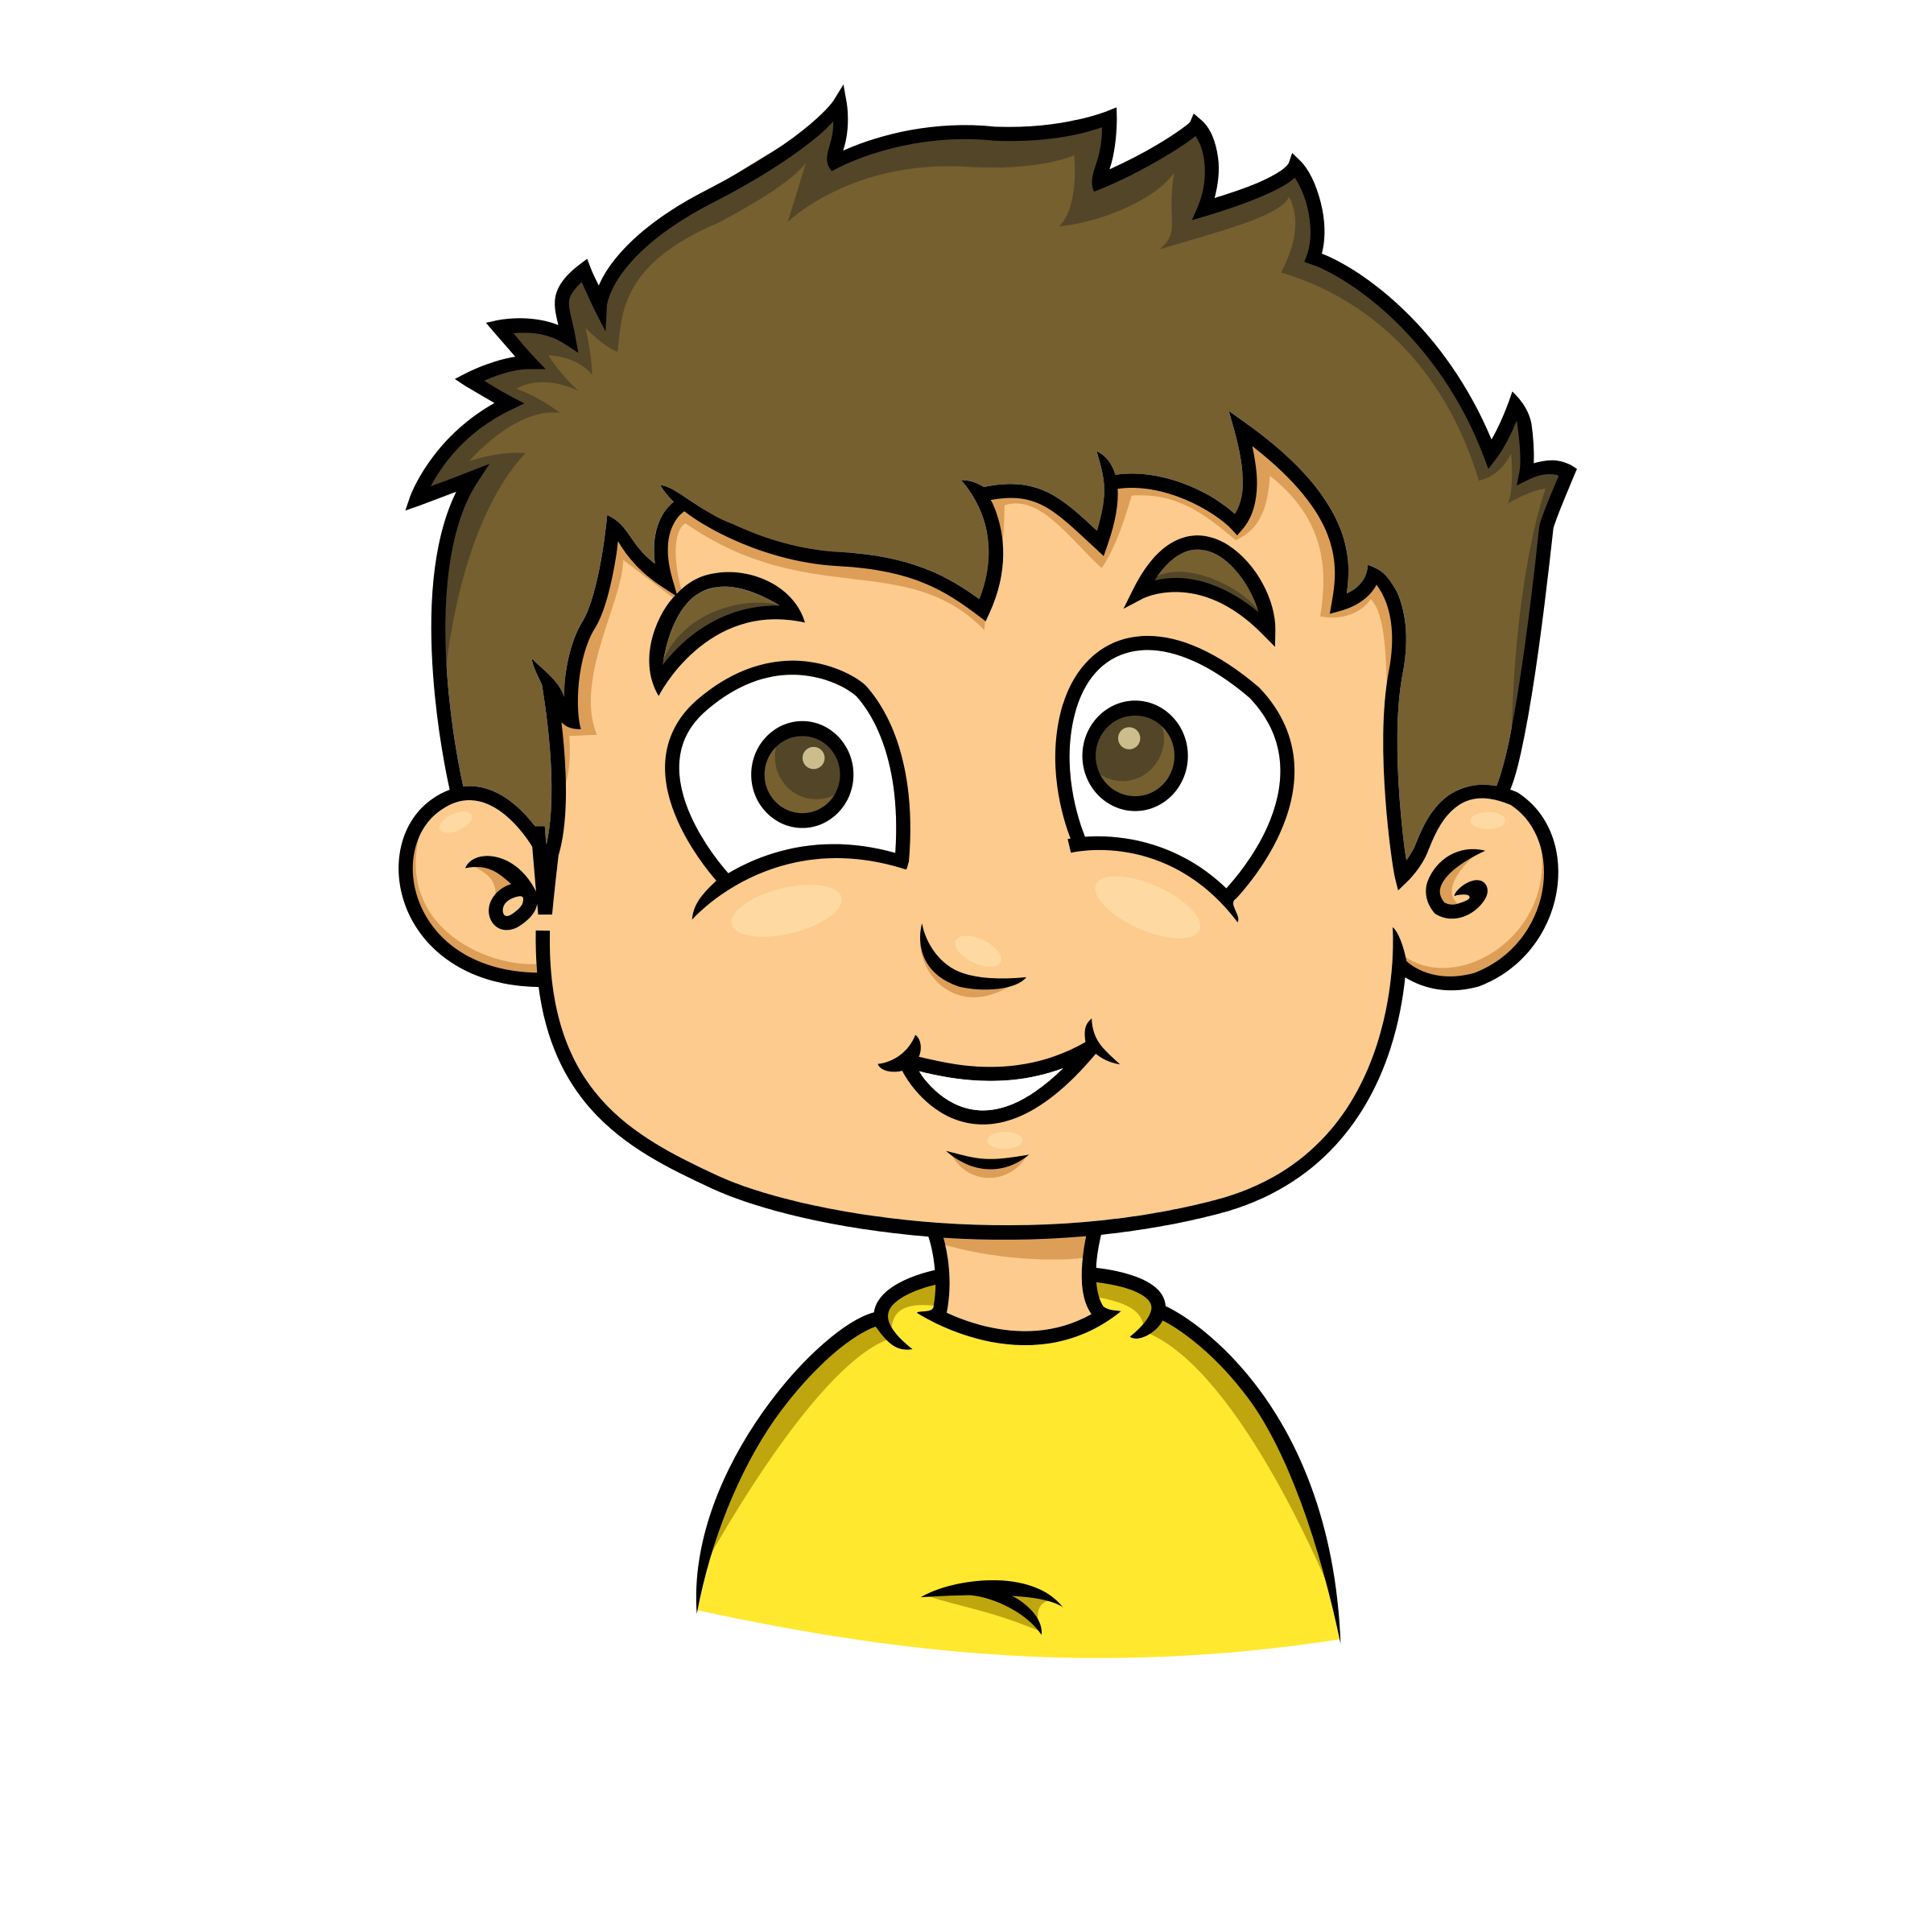 Clipart kid smile picture library Children child clipart clipart - Cliparting.com picture library